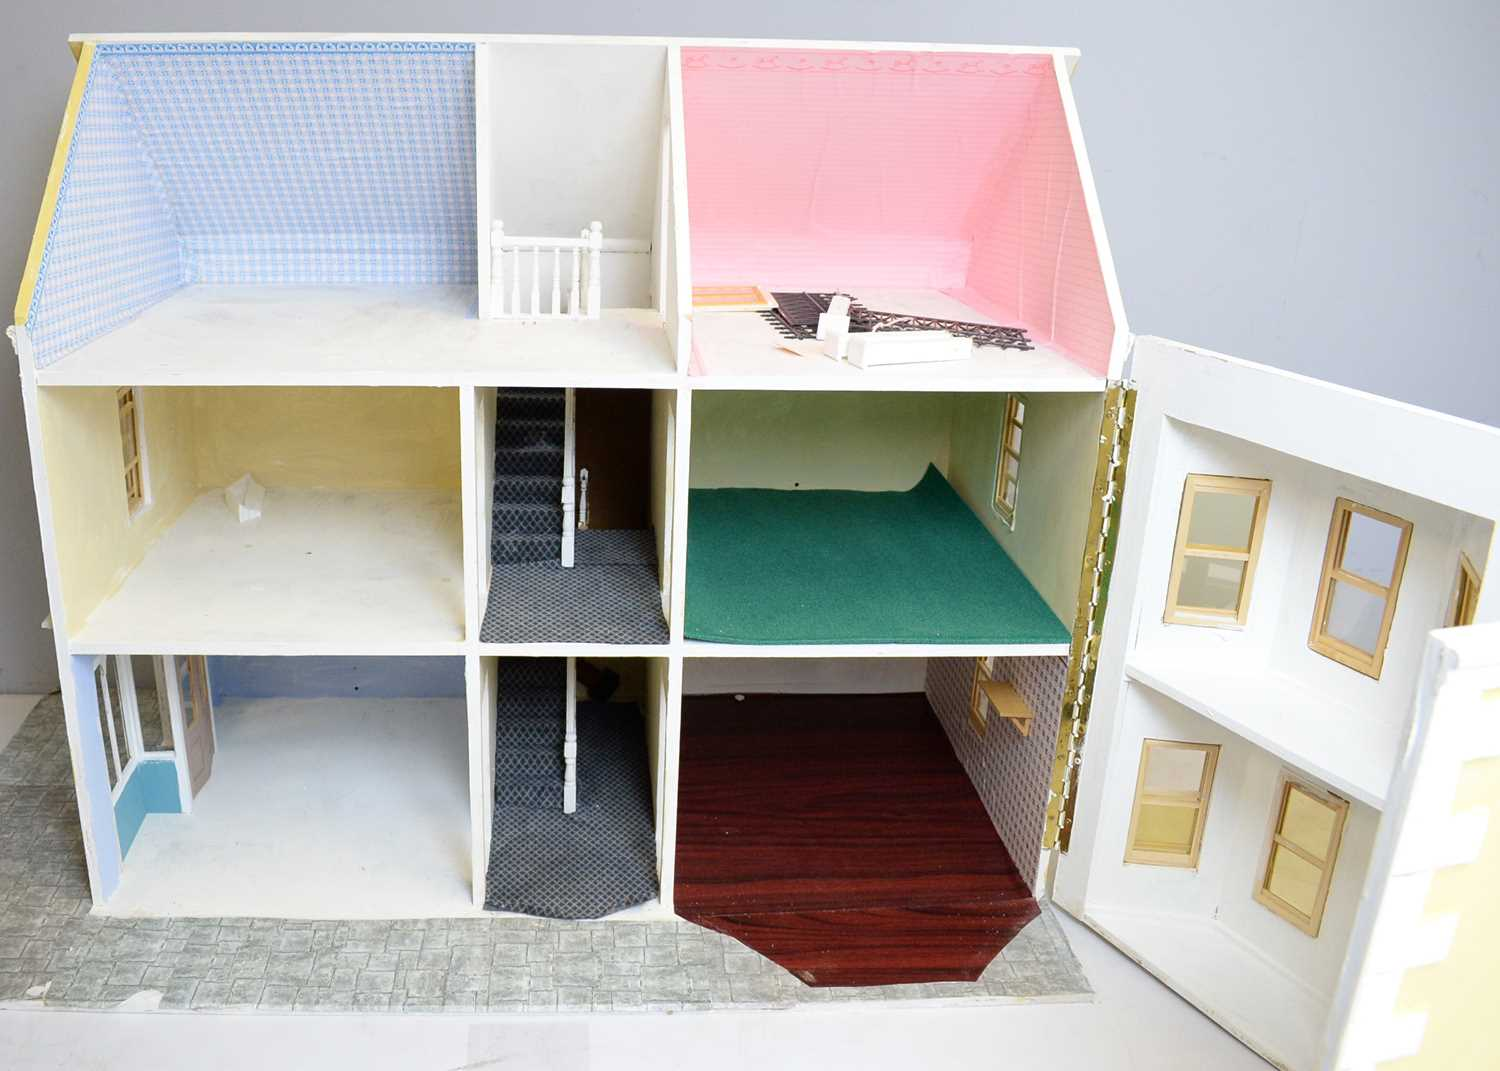 A doll's house incorporating a shop to one side. - Image 2 of 2